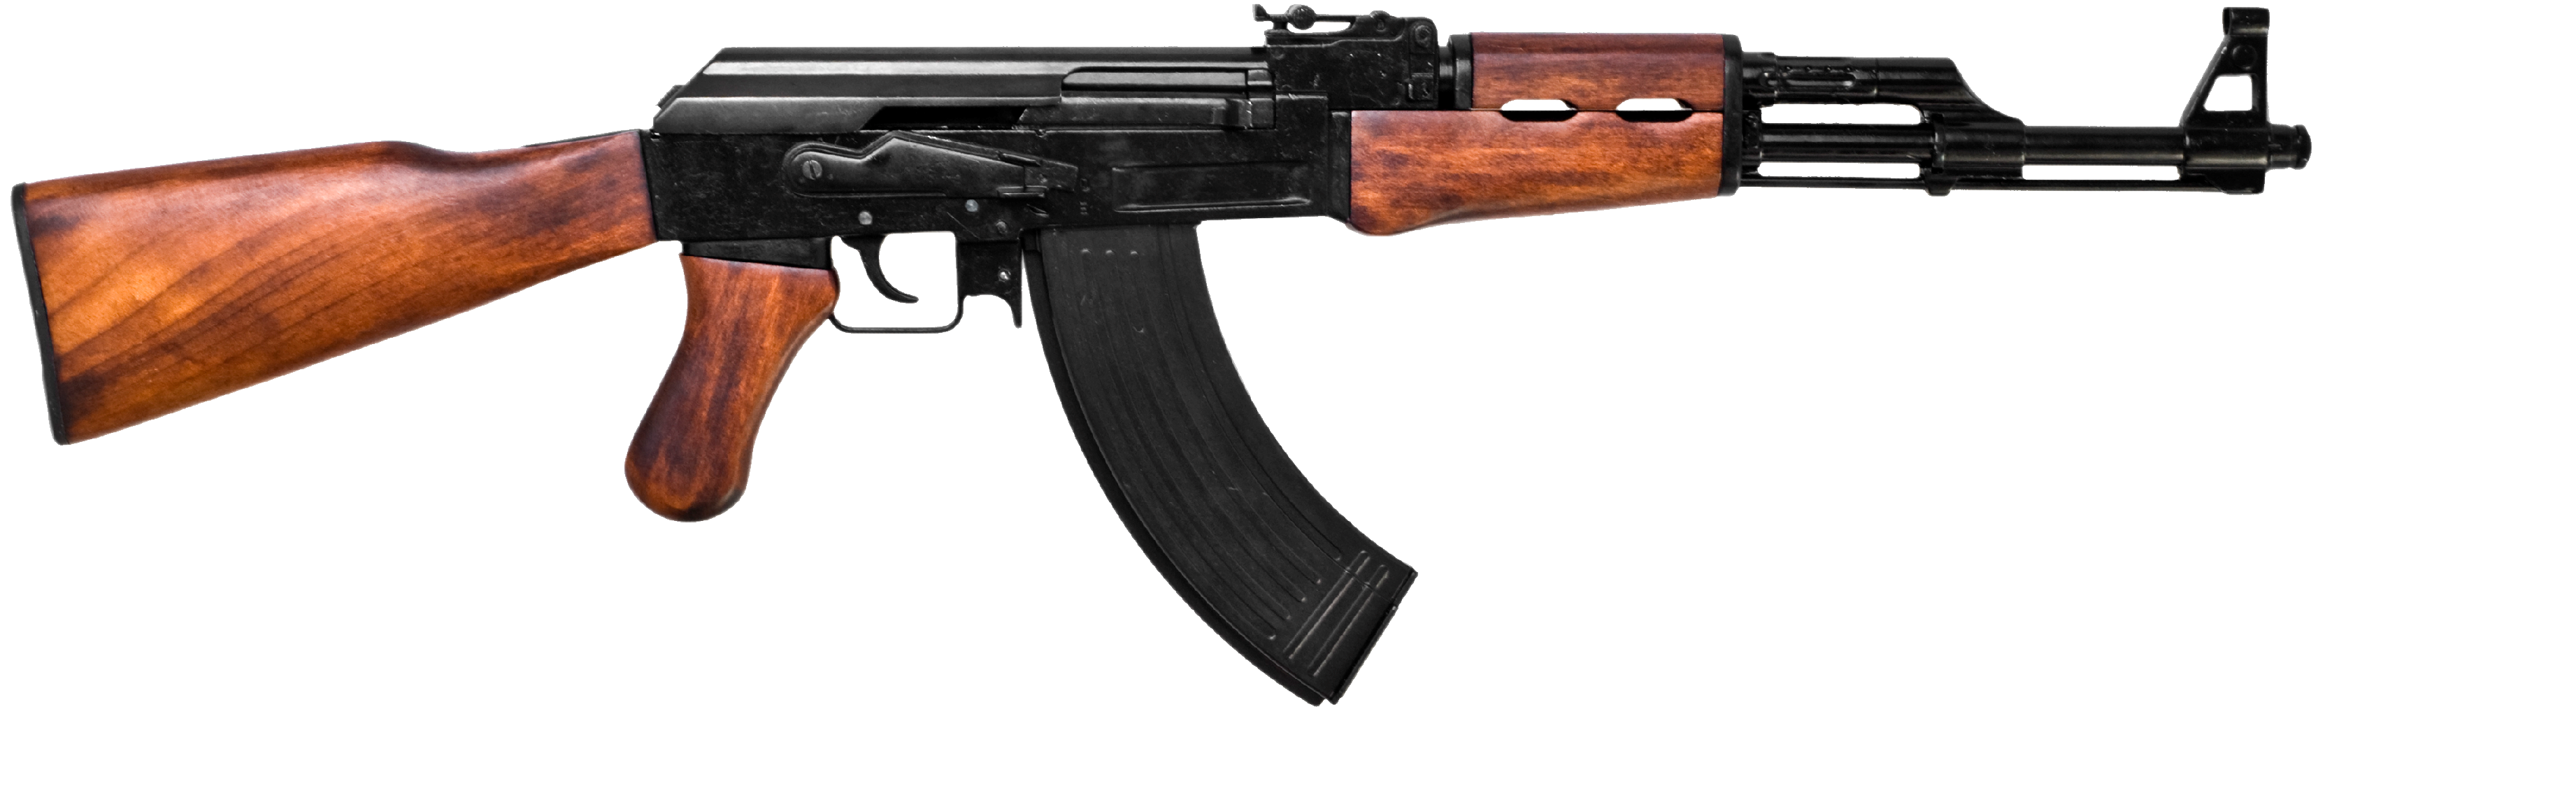 Grab and download Assault Rifle PNG Picture